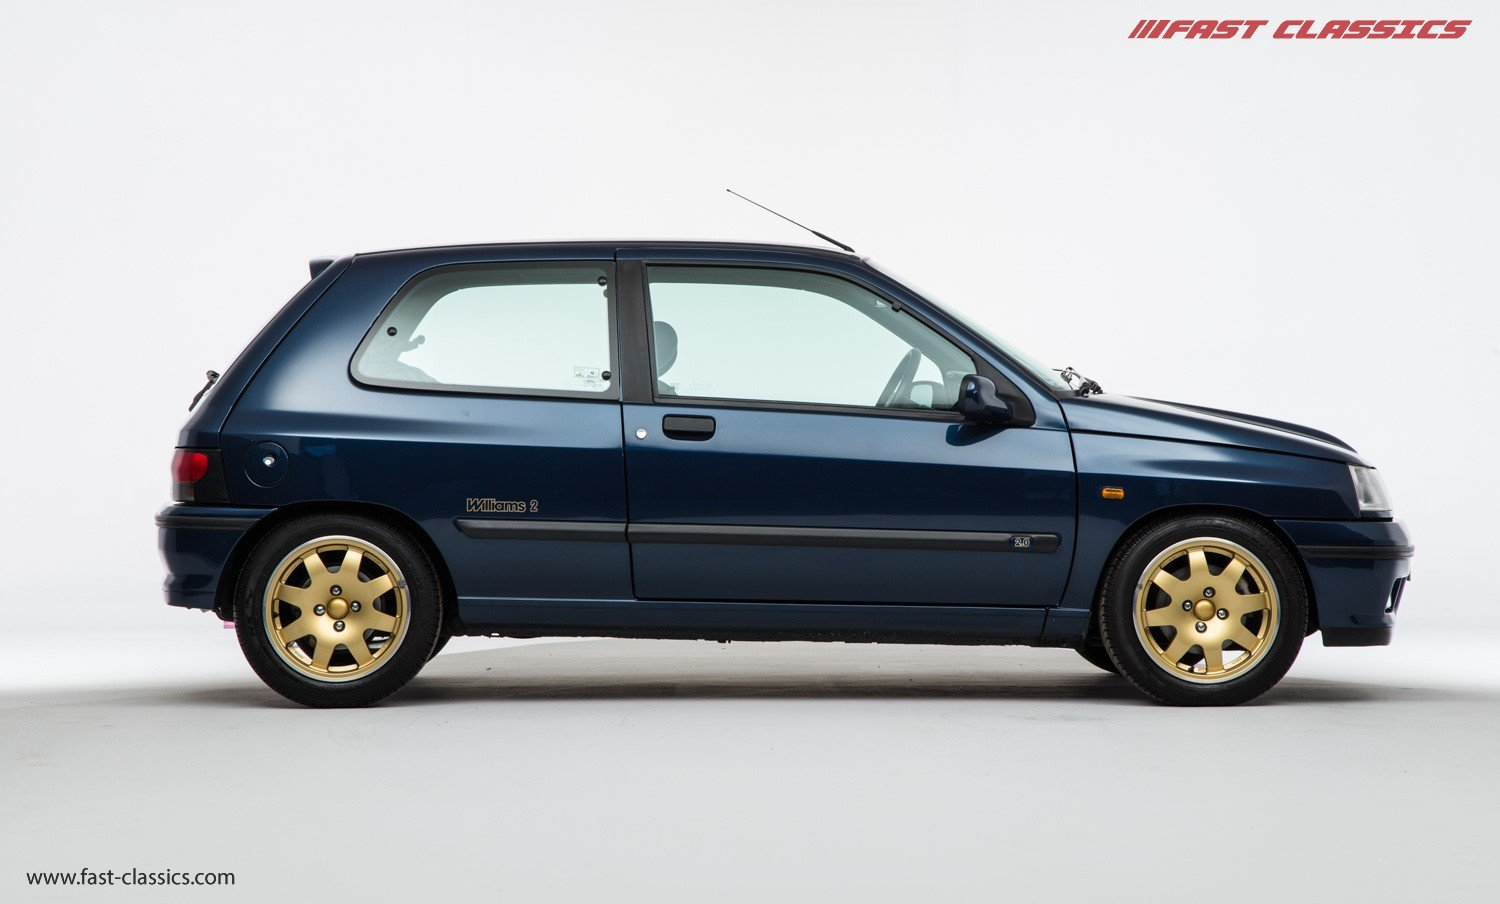 1995 RENAULT CLIO WILLIAMS 2 // ONLY 6K MILES // TIME WARP CONDIT SOLD (picture 1 of 6)